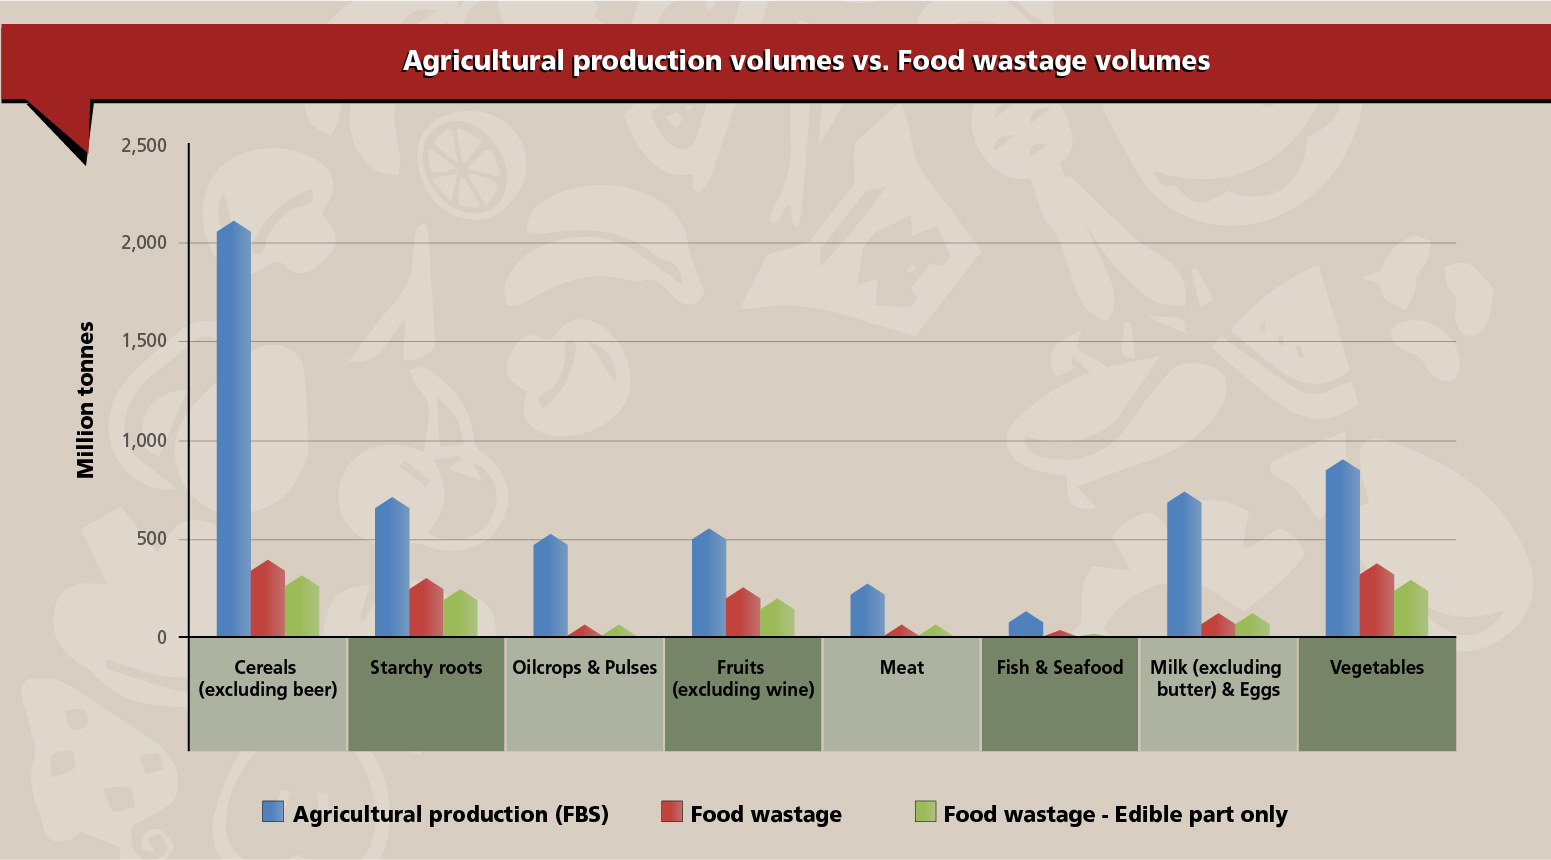 Figure 1. Total agricultural production (FBS) vs. food wastage volumes & food wastage volumes for edible part only.